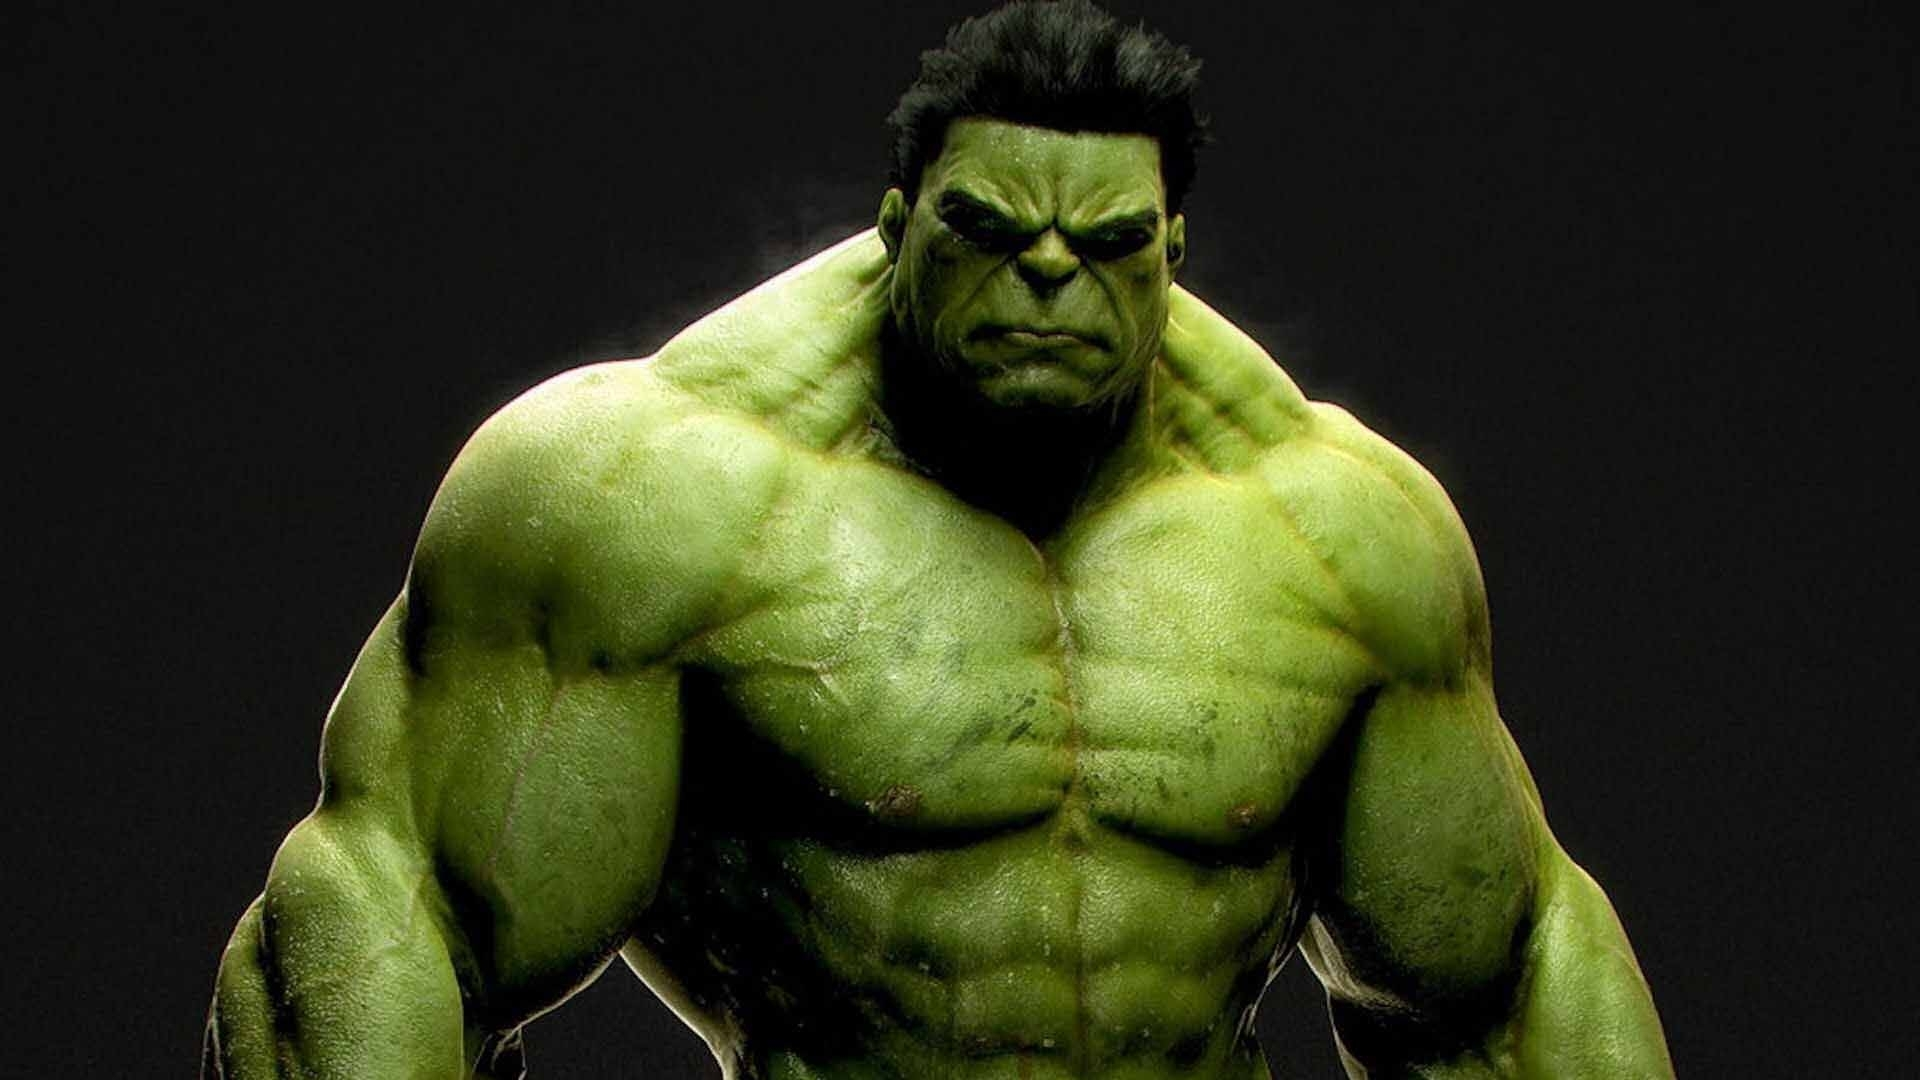 hulk wallpapers hd 1080p android - droidsoft